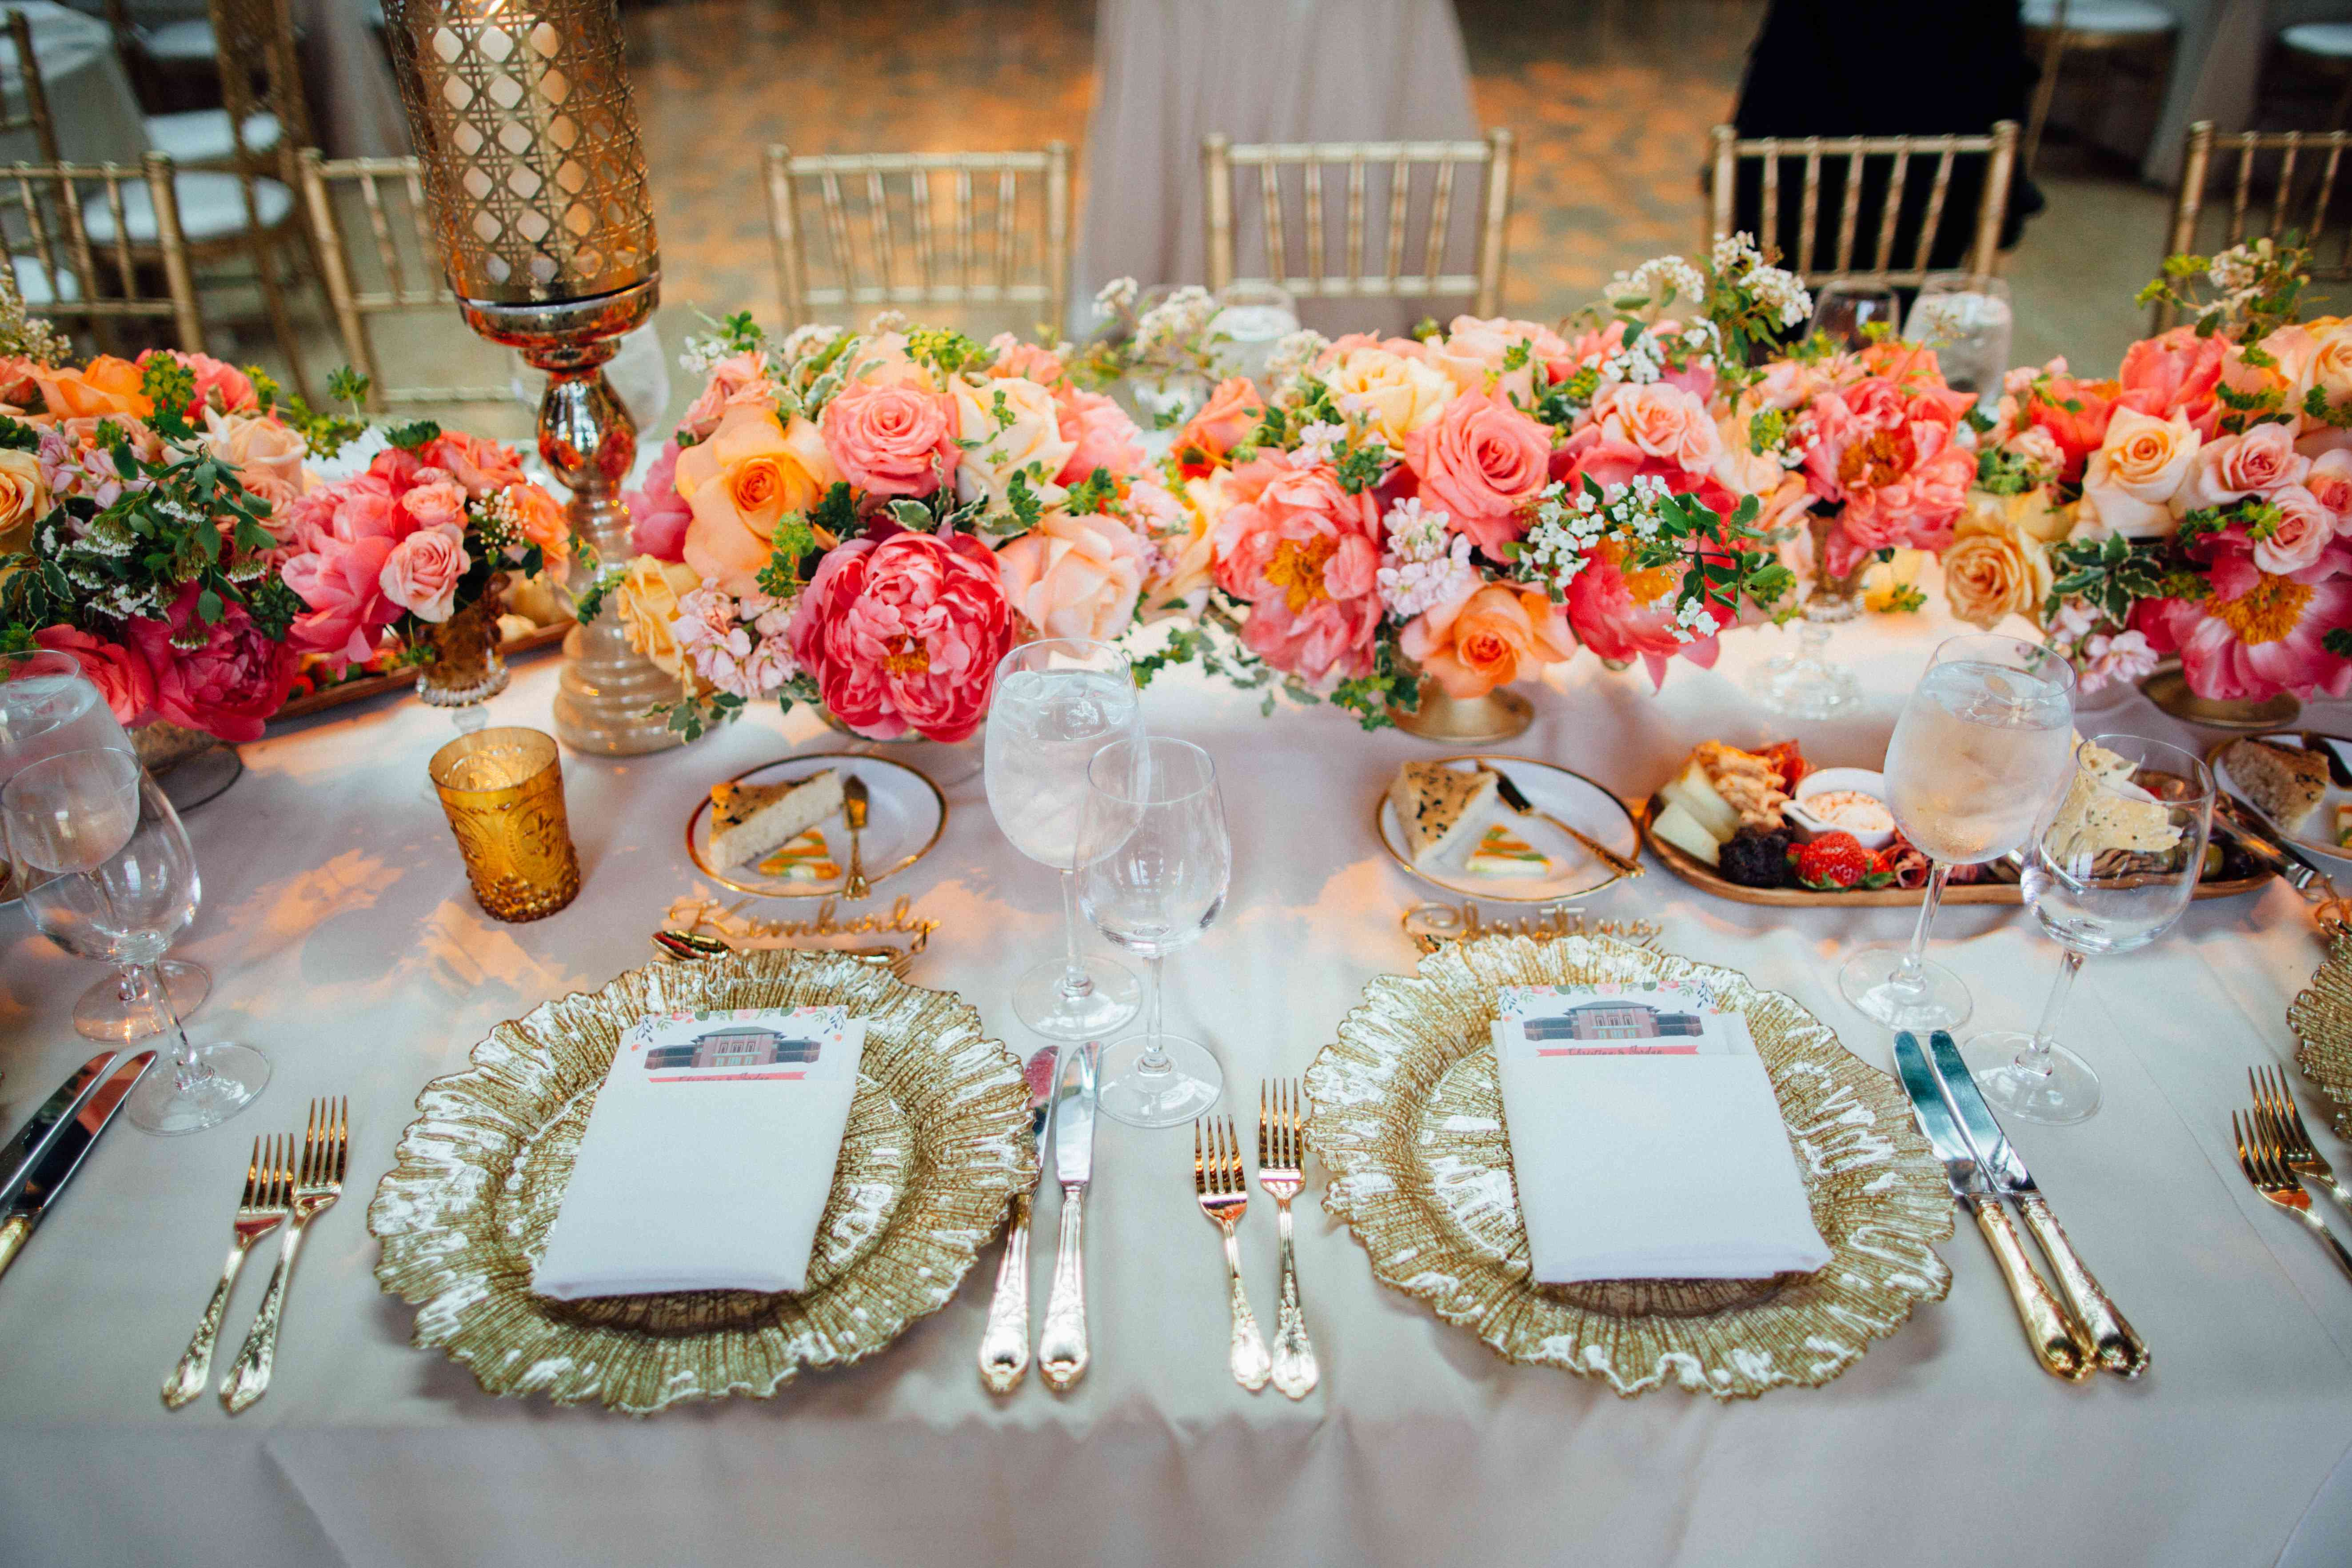 <p>Table Setting with Gold Plates and Pink Flowers</p><br><br>